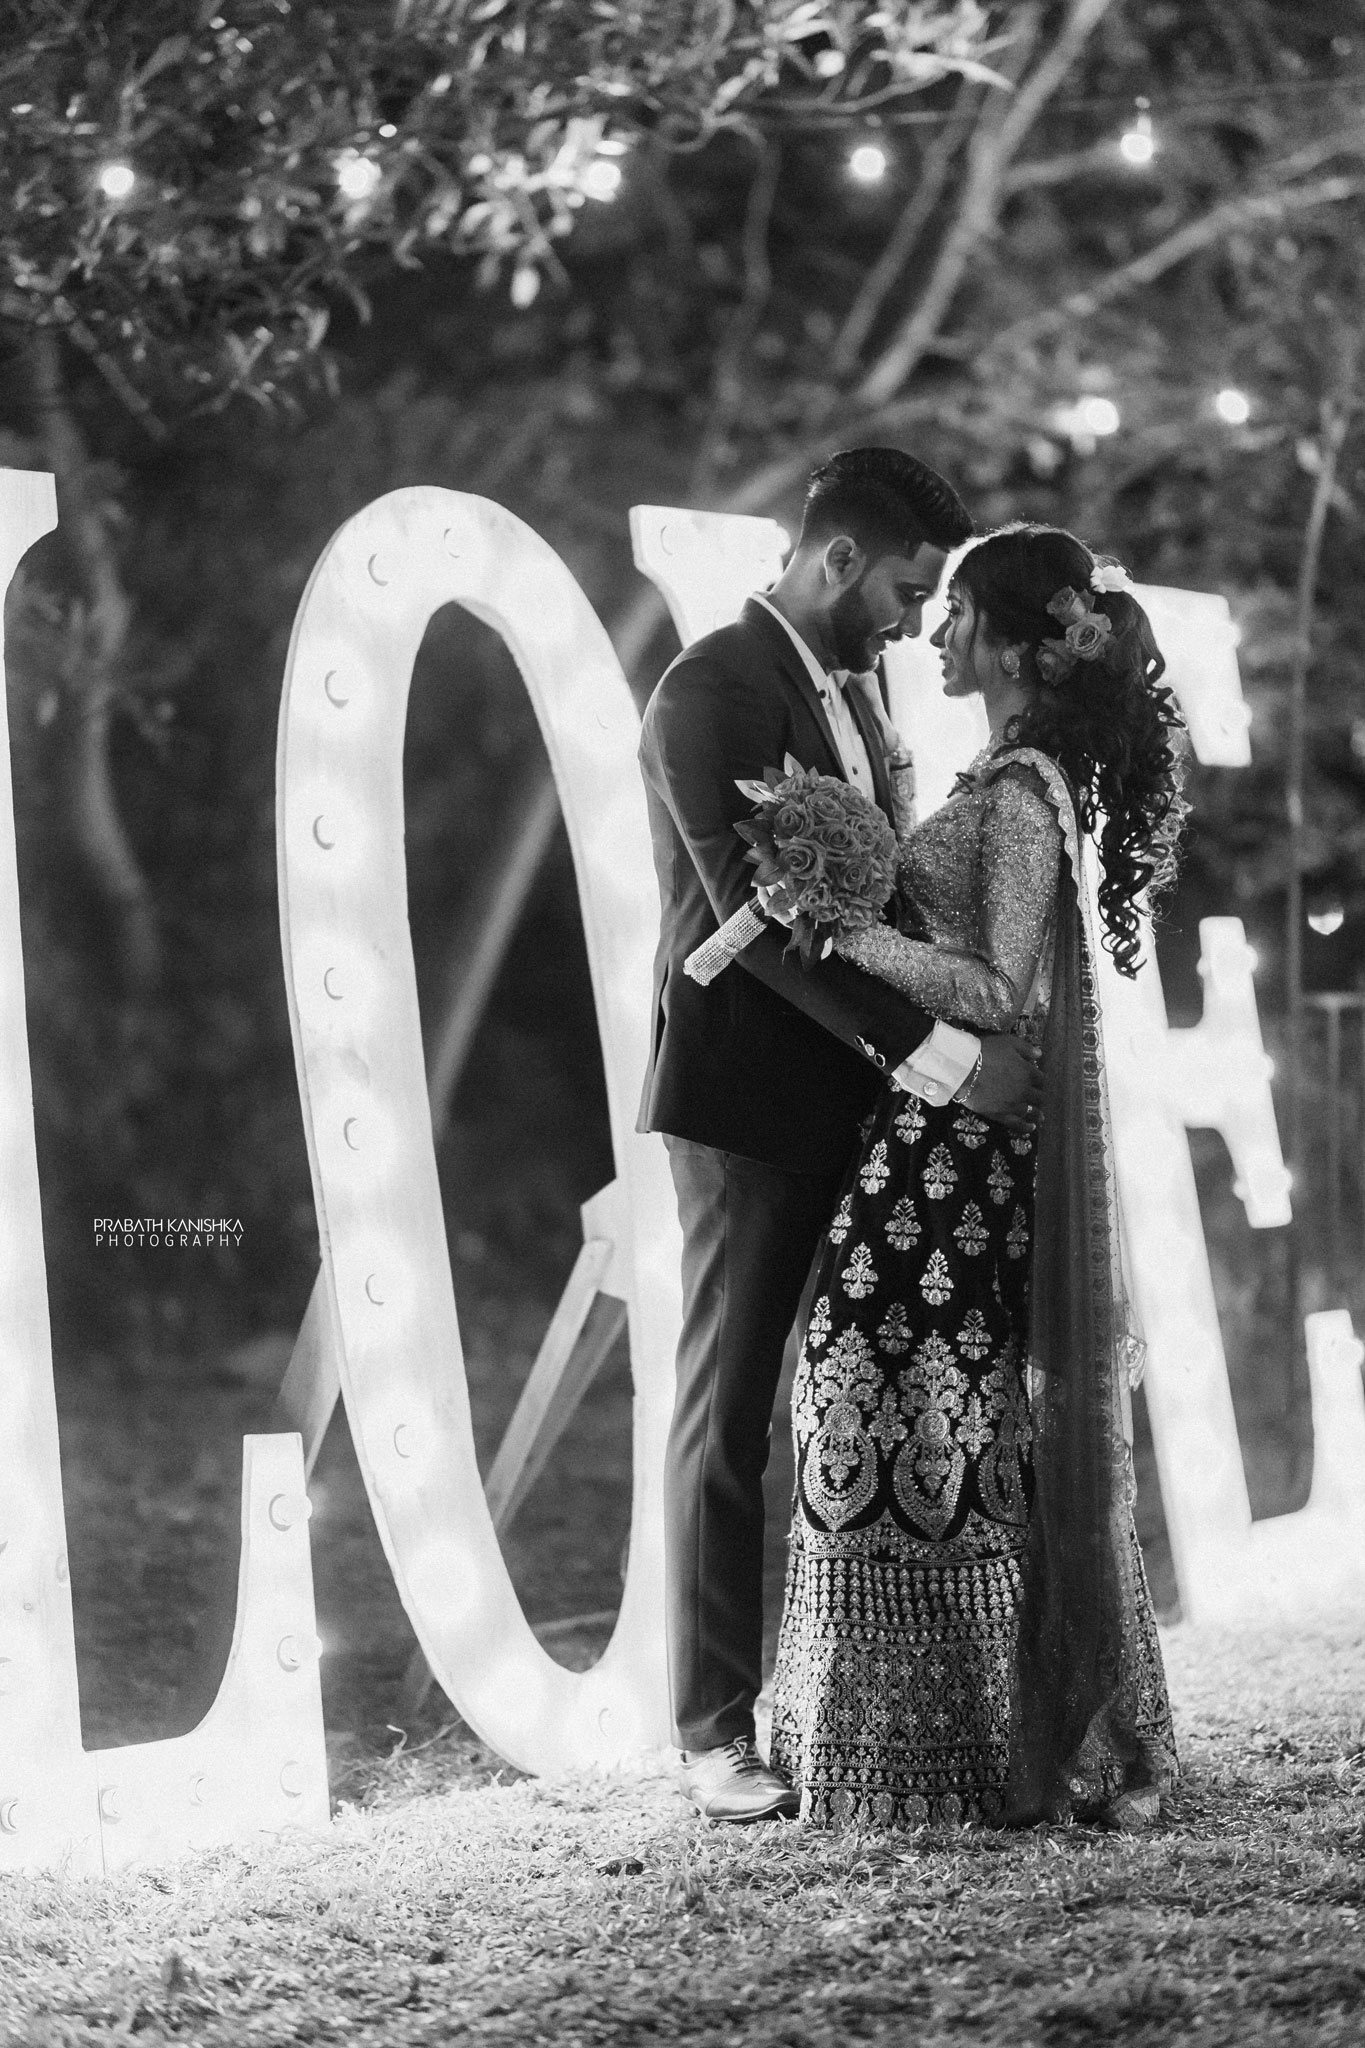 Imasha & Nimesh - Prabath Kanishka Wedding Photography